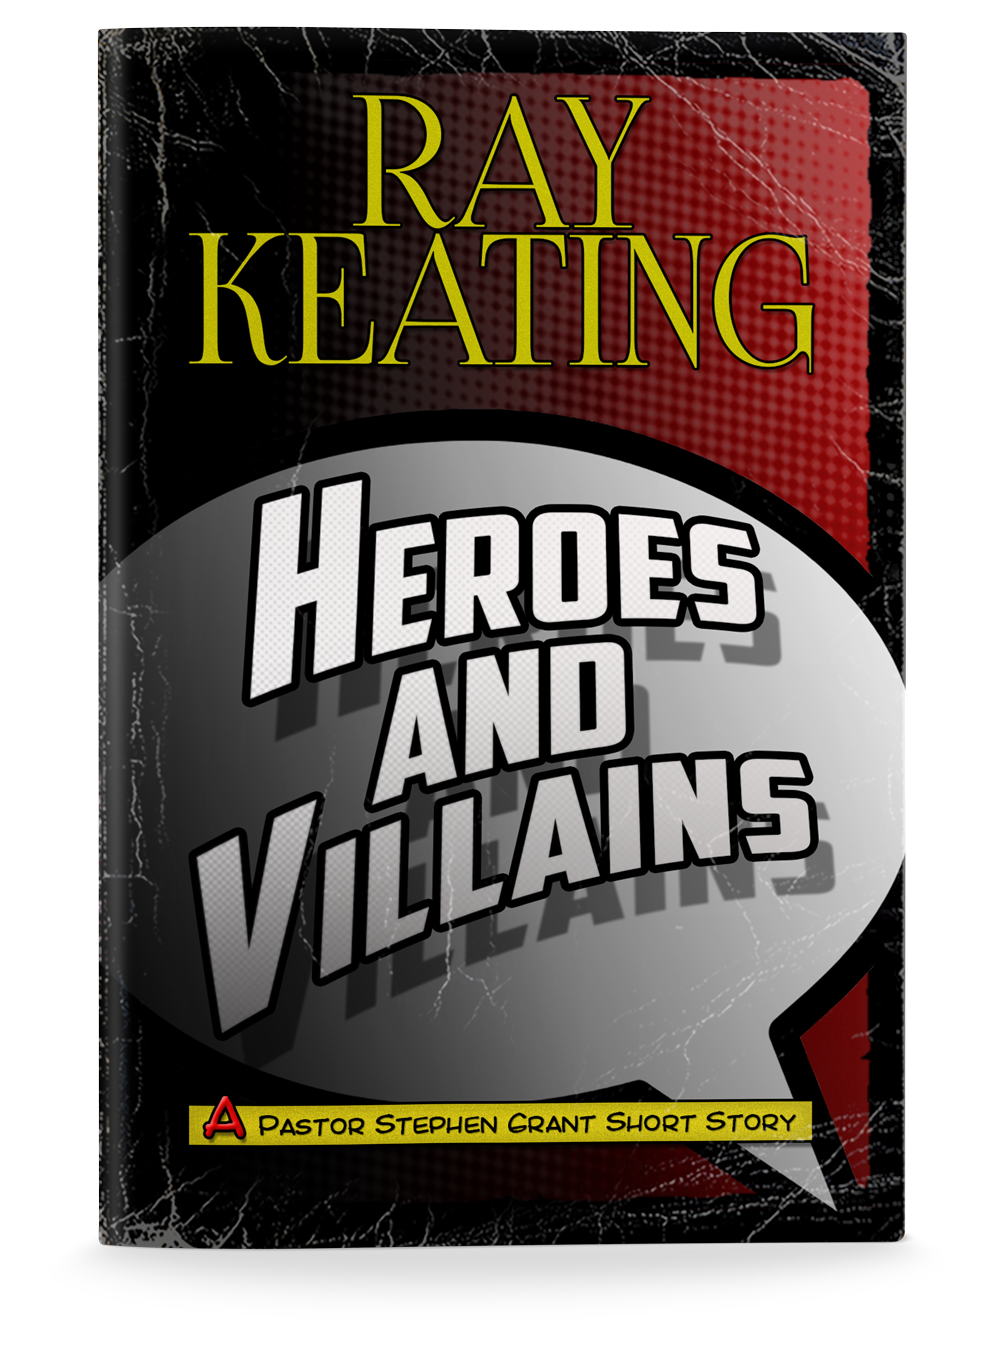 Get Ray Keating's Pastor Stephen Grant Novels & Short Stories